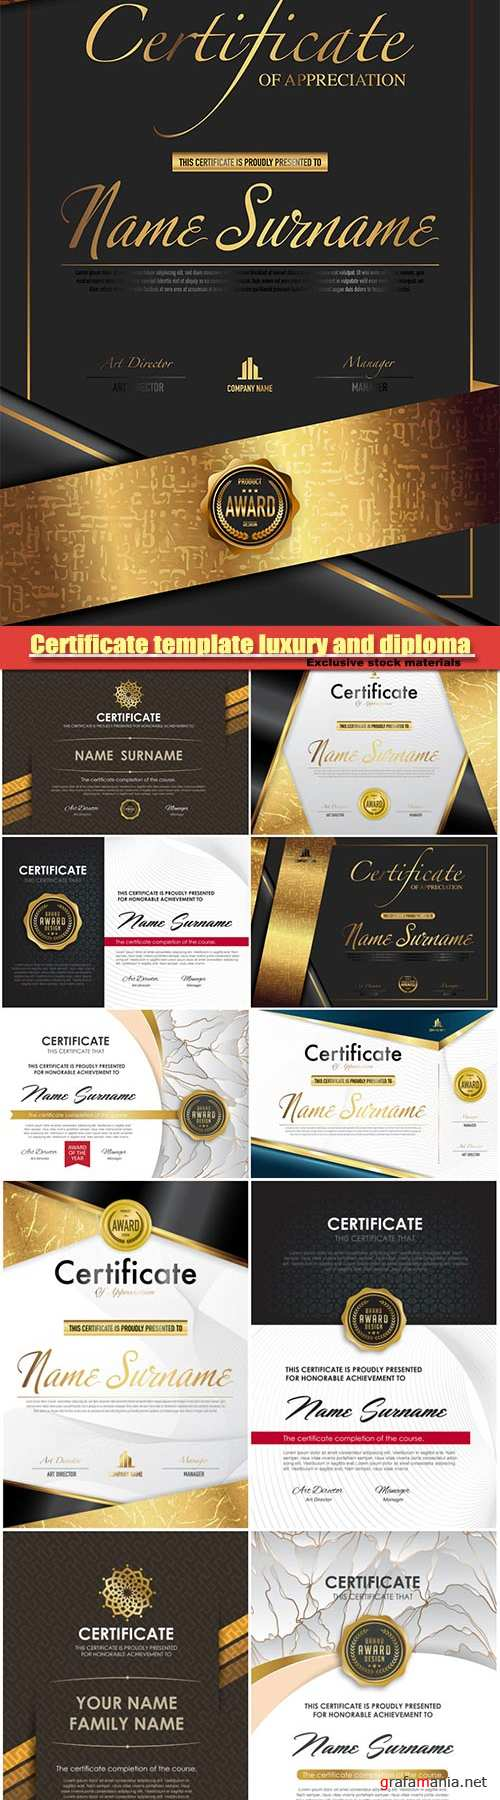 Certificate template luxury and diploma vector illustration